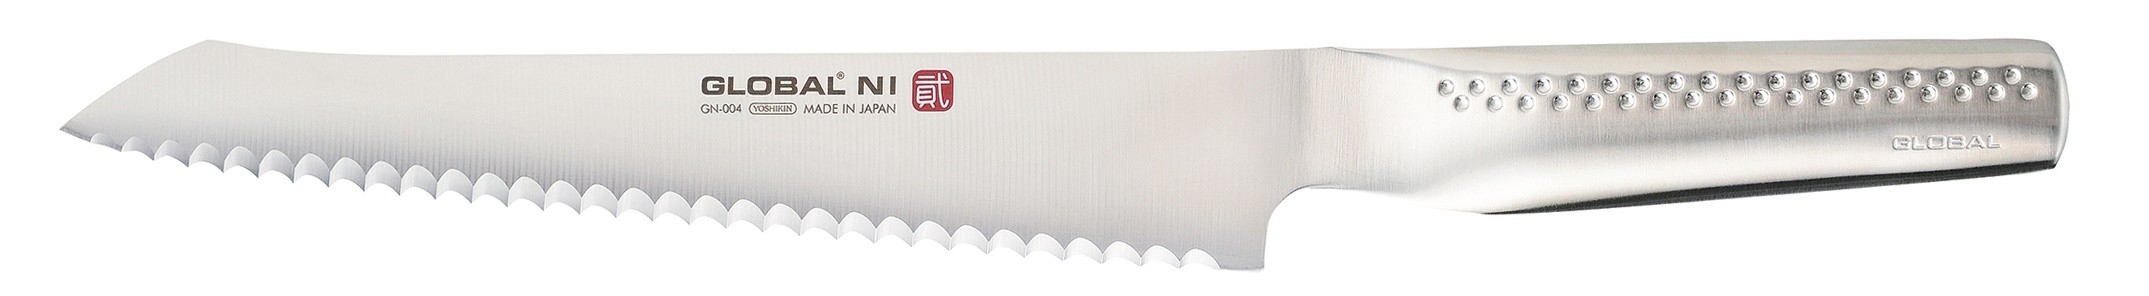 Global Knives NI Series 23cm Bread Knife (GN-004)